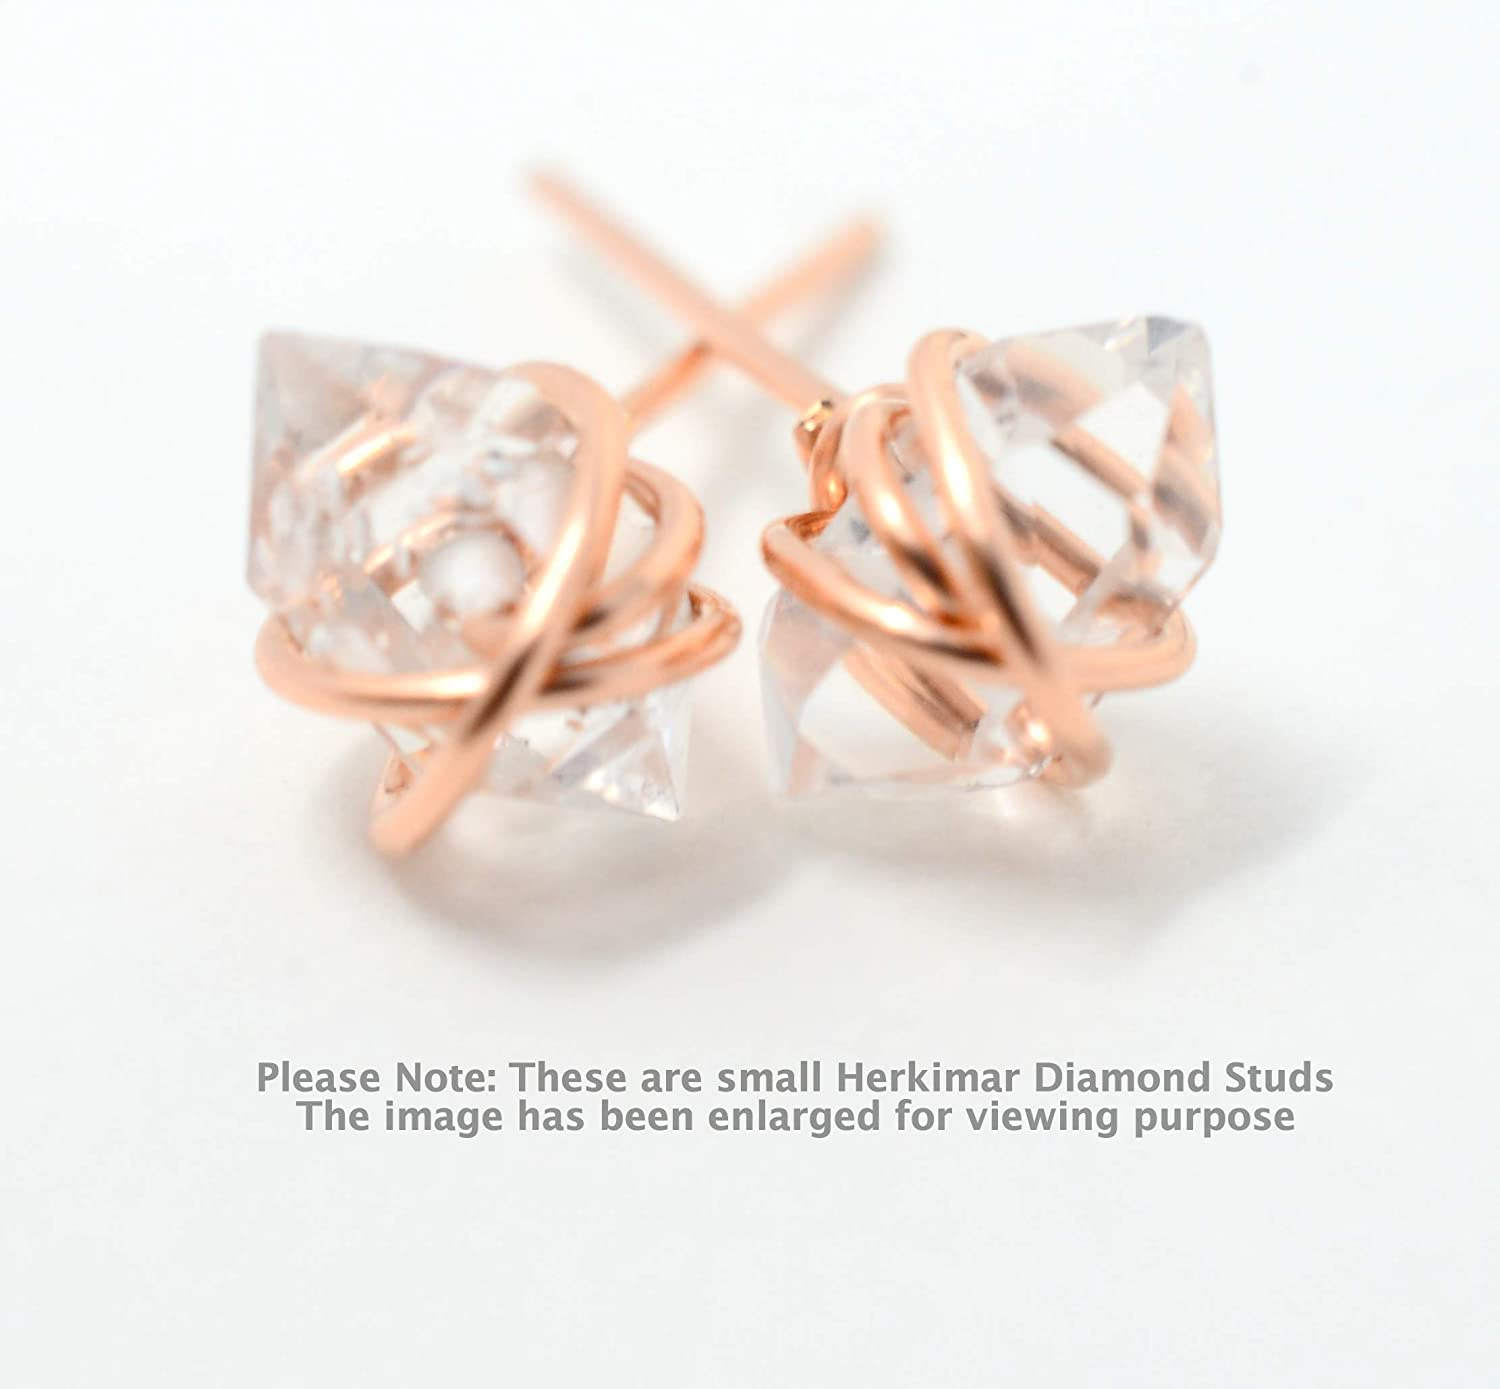 Handmade Wire wrapped Rose Quartz Stud Earrings 14K Gold Filled or Sterling Silver or 14K Rose Gold Filled Geometric earrings